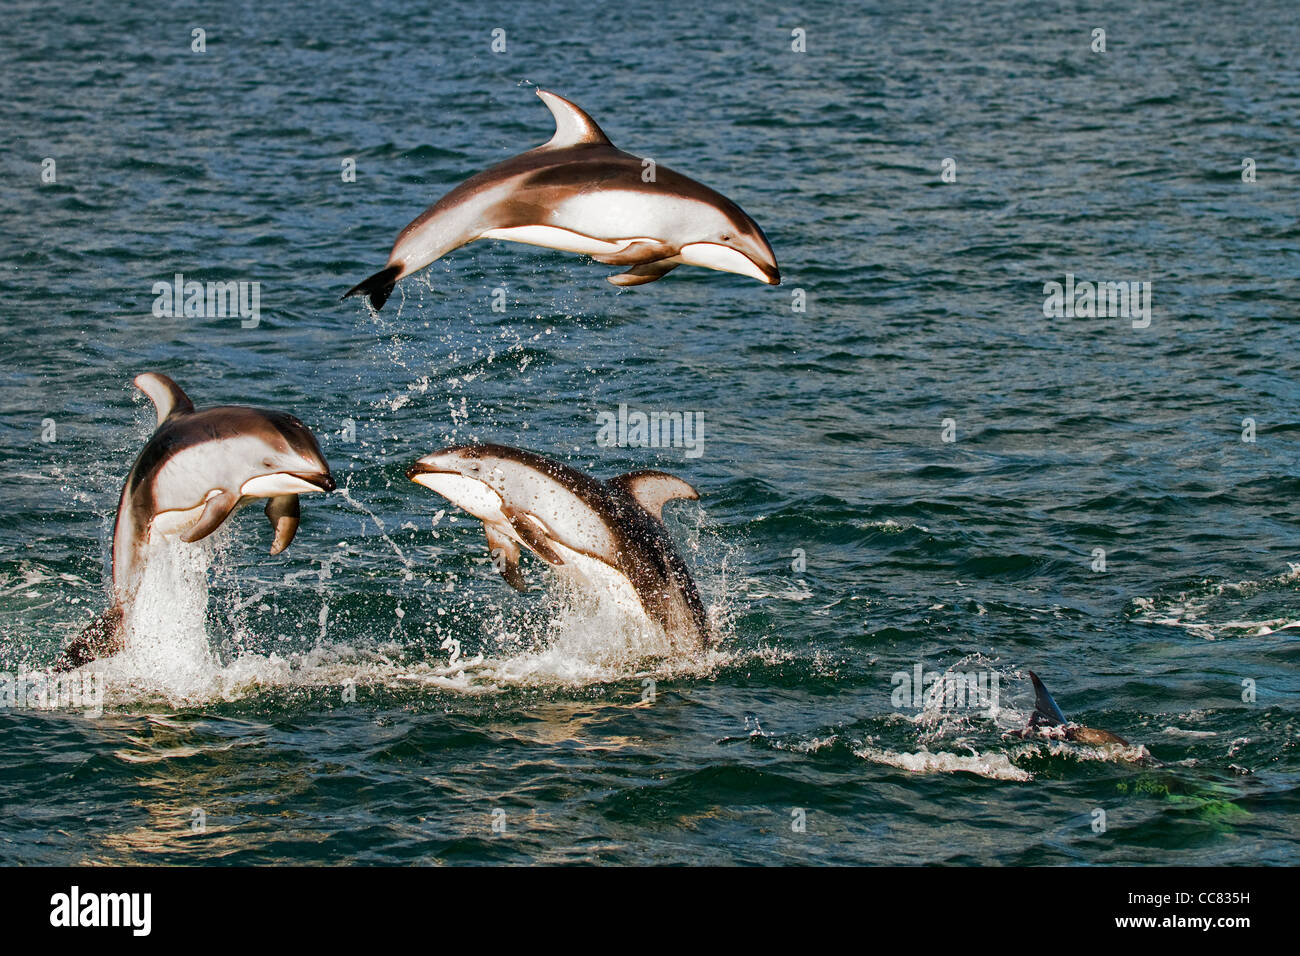 Pacific White-sided Dolphins (Lagenorhynchus obliquidens / longidens / ognevi) jumping in the North Pacific Ocean, - Stock Image